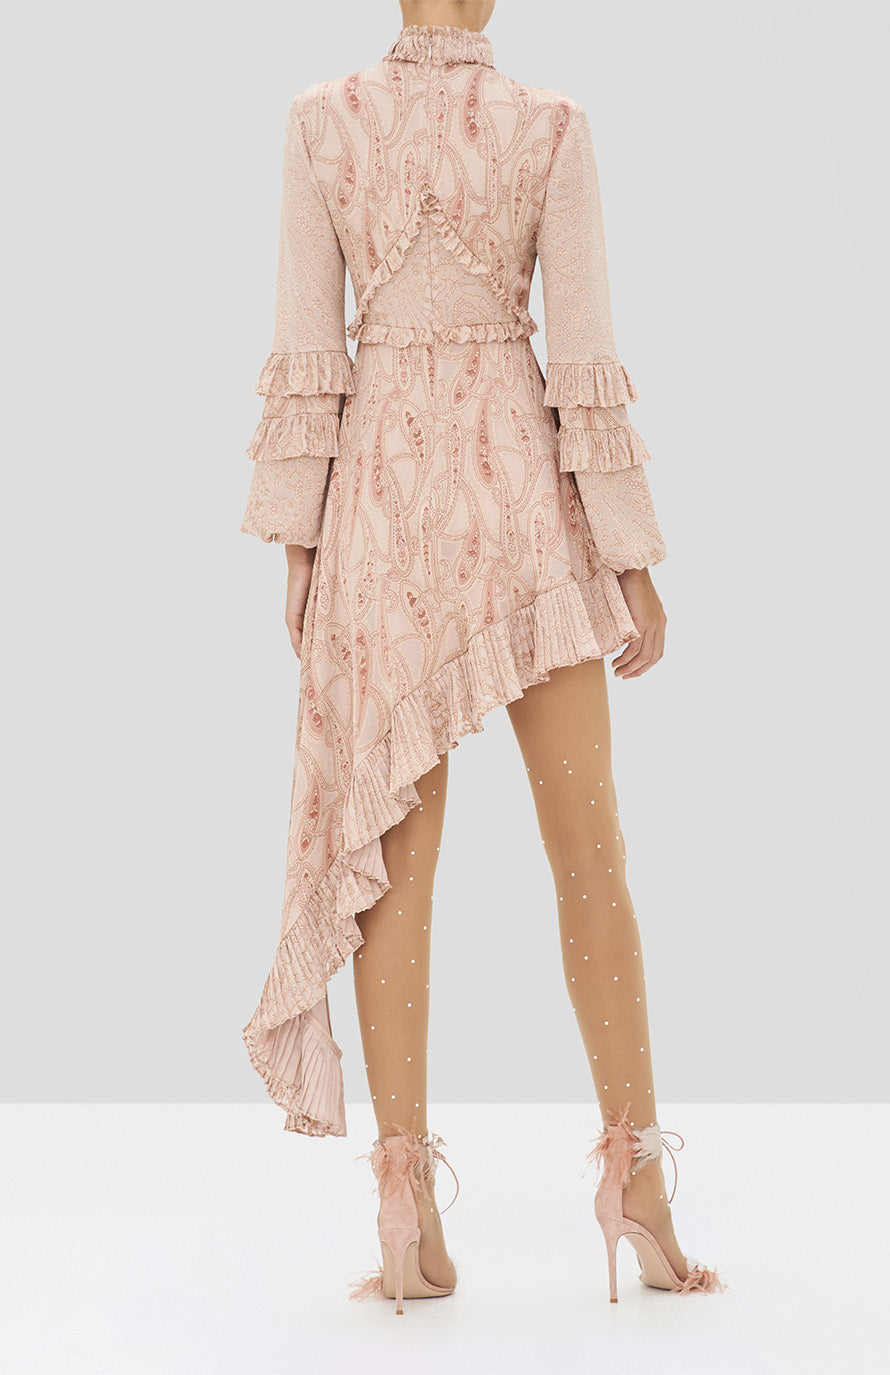 Alexis Liora Dress in Blush Paisley from the Holiday 2019 Ready To Wear Collection - Rear View